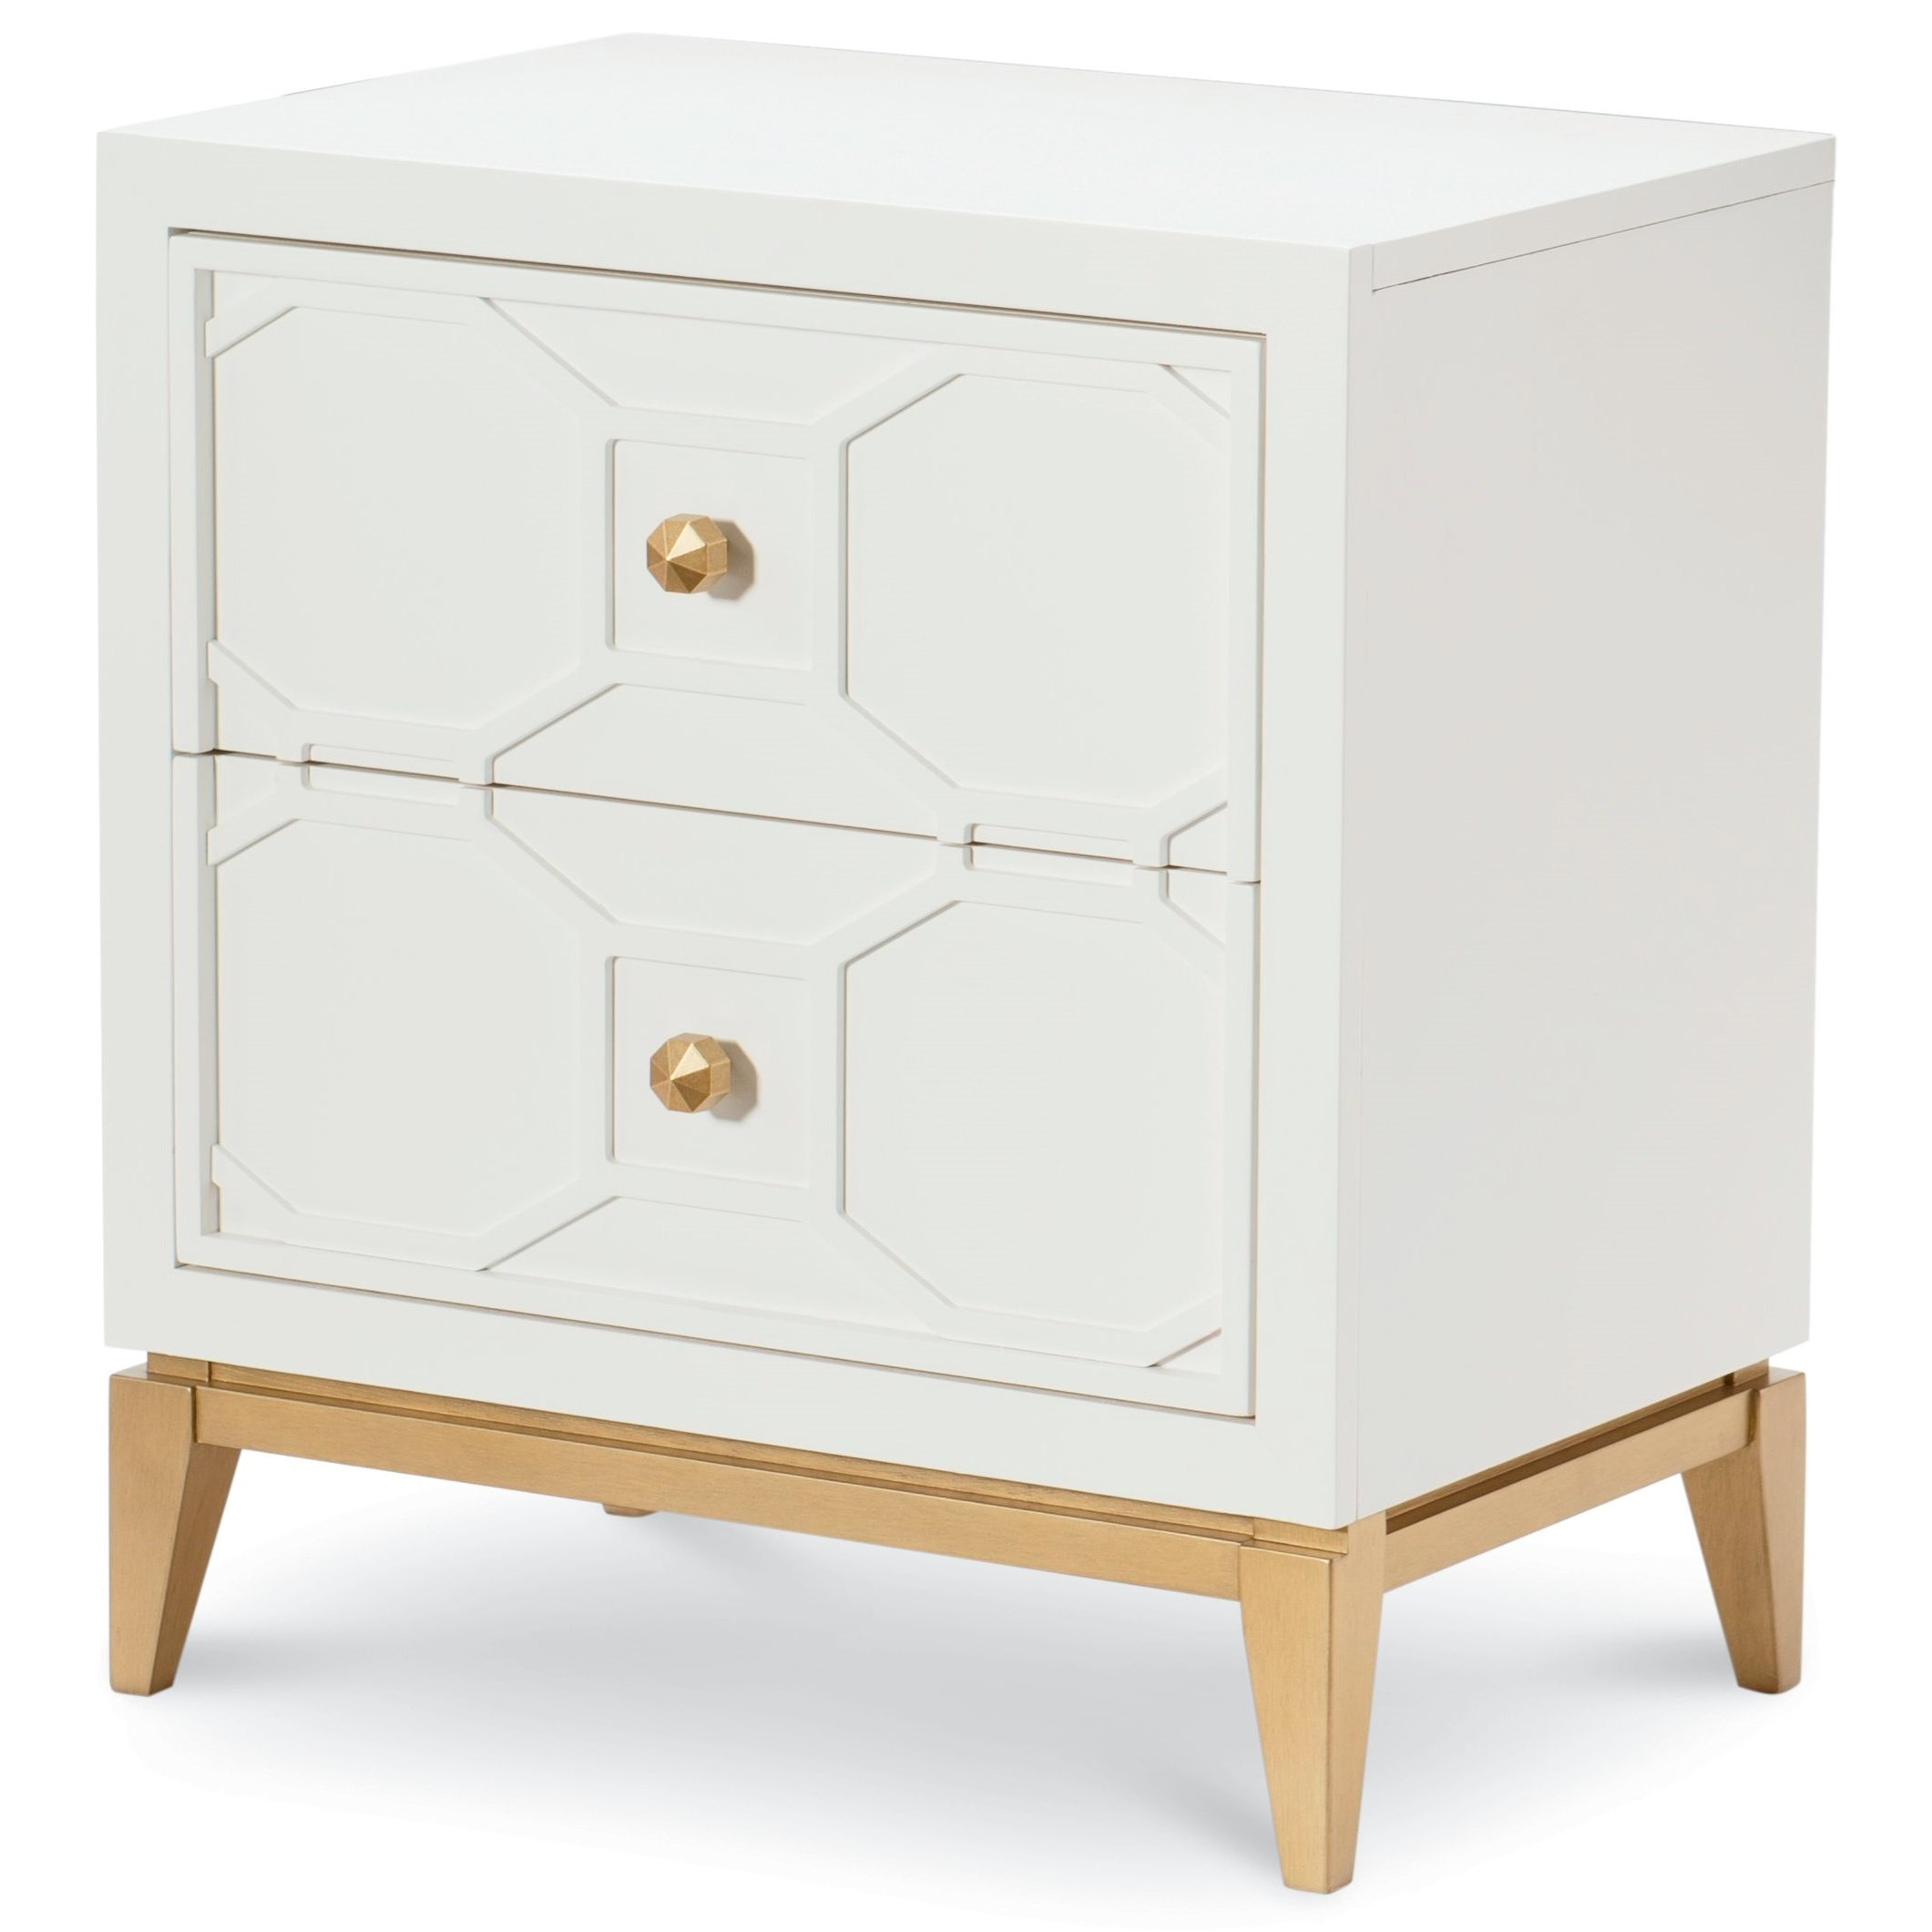 Chelsea Night Stand with Decorative Lattice by Rachael Ray Home by Legacy Classic at Stoney Creek Furniture